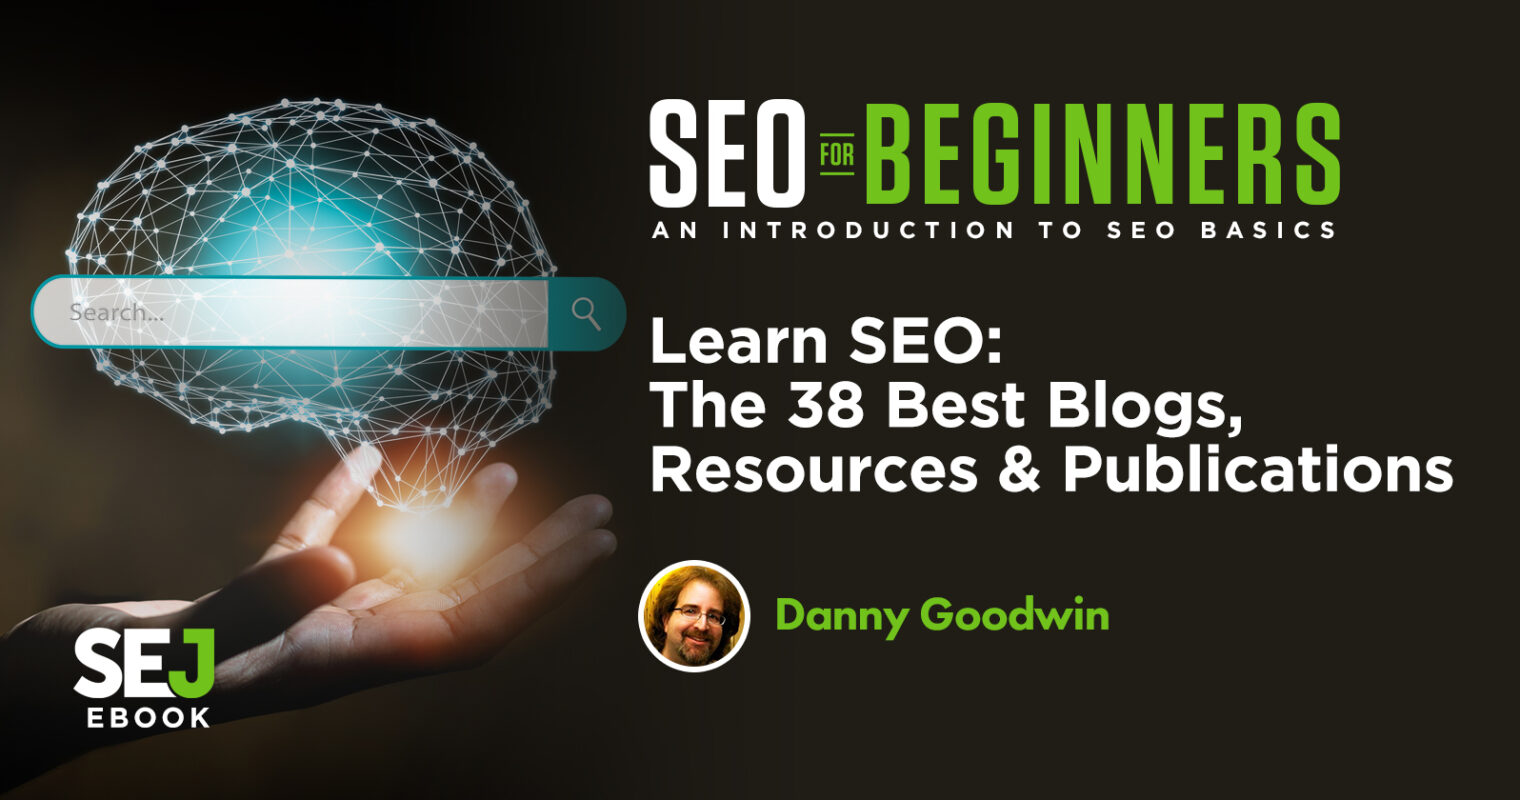 Learn SEO: The 38 Best Blogs, Resources & Publications